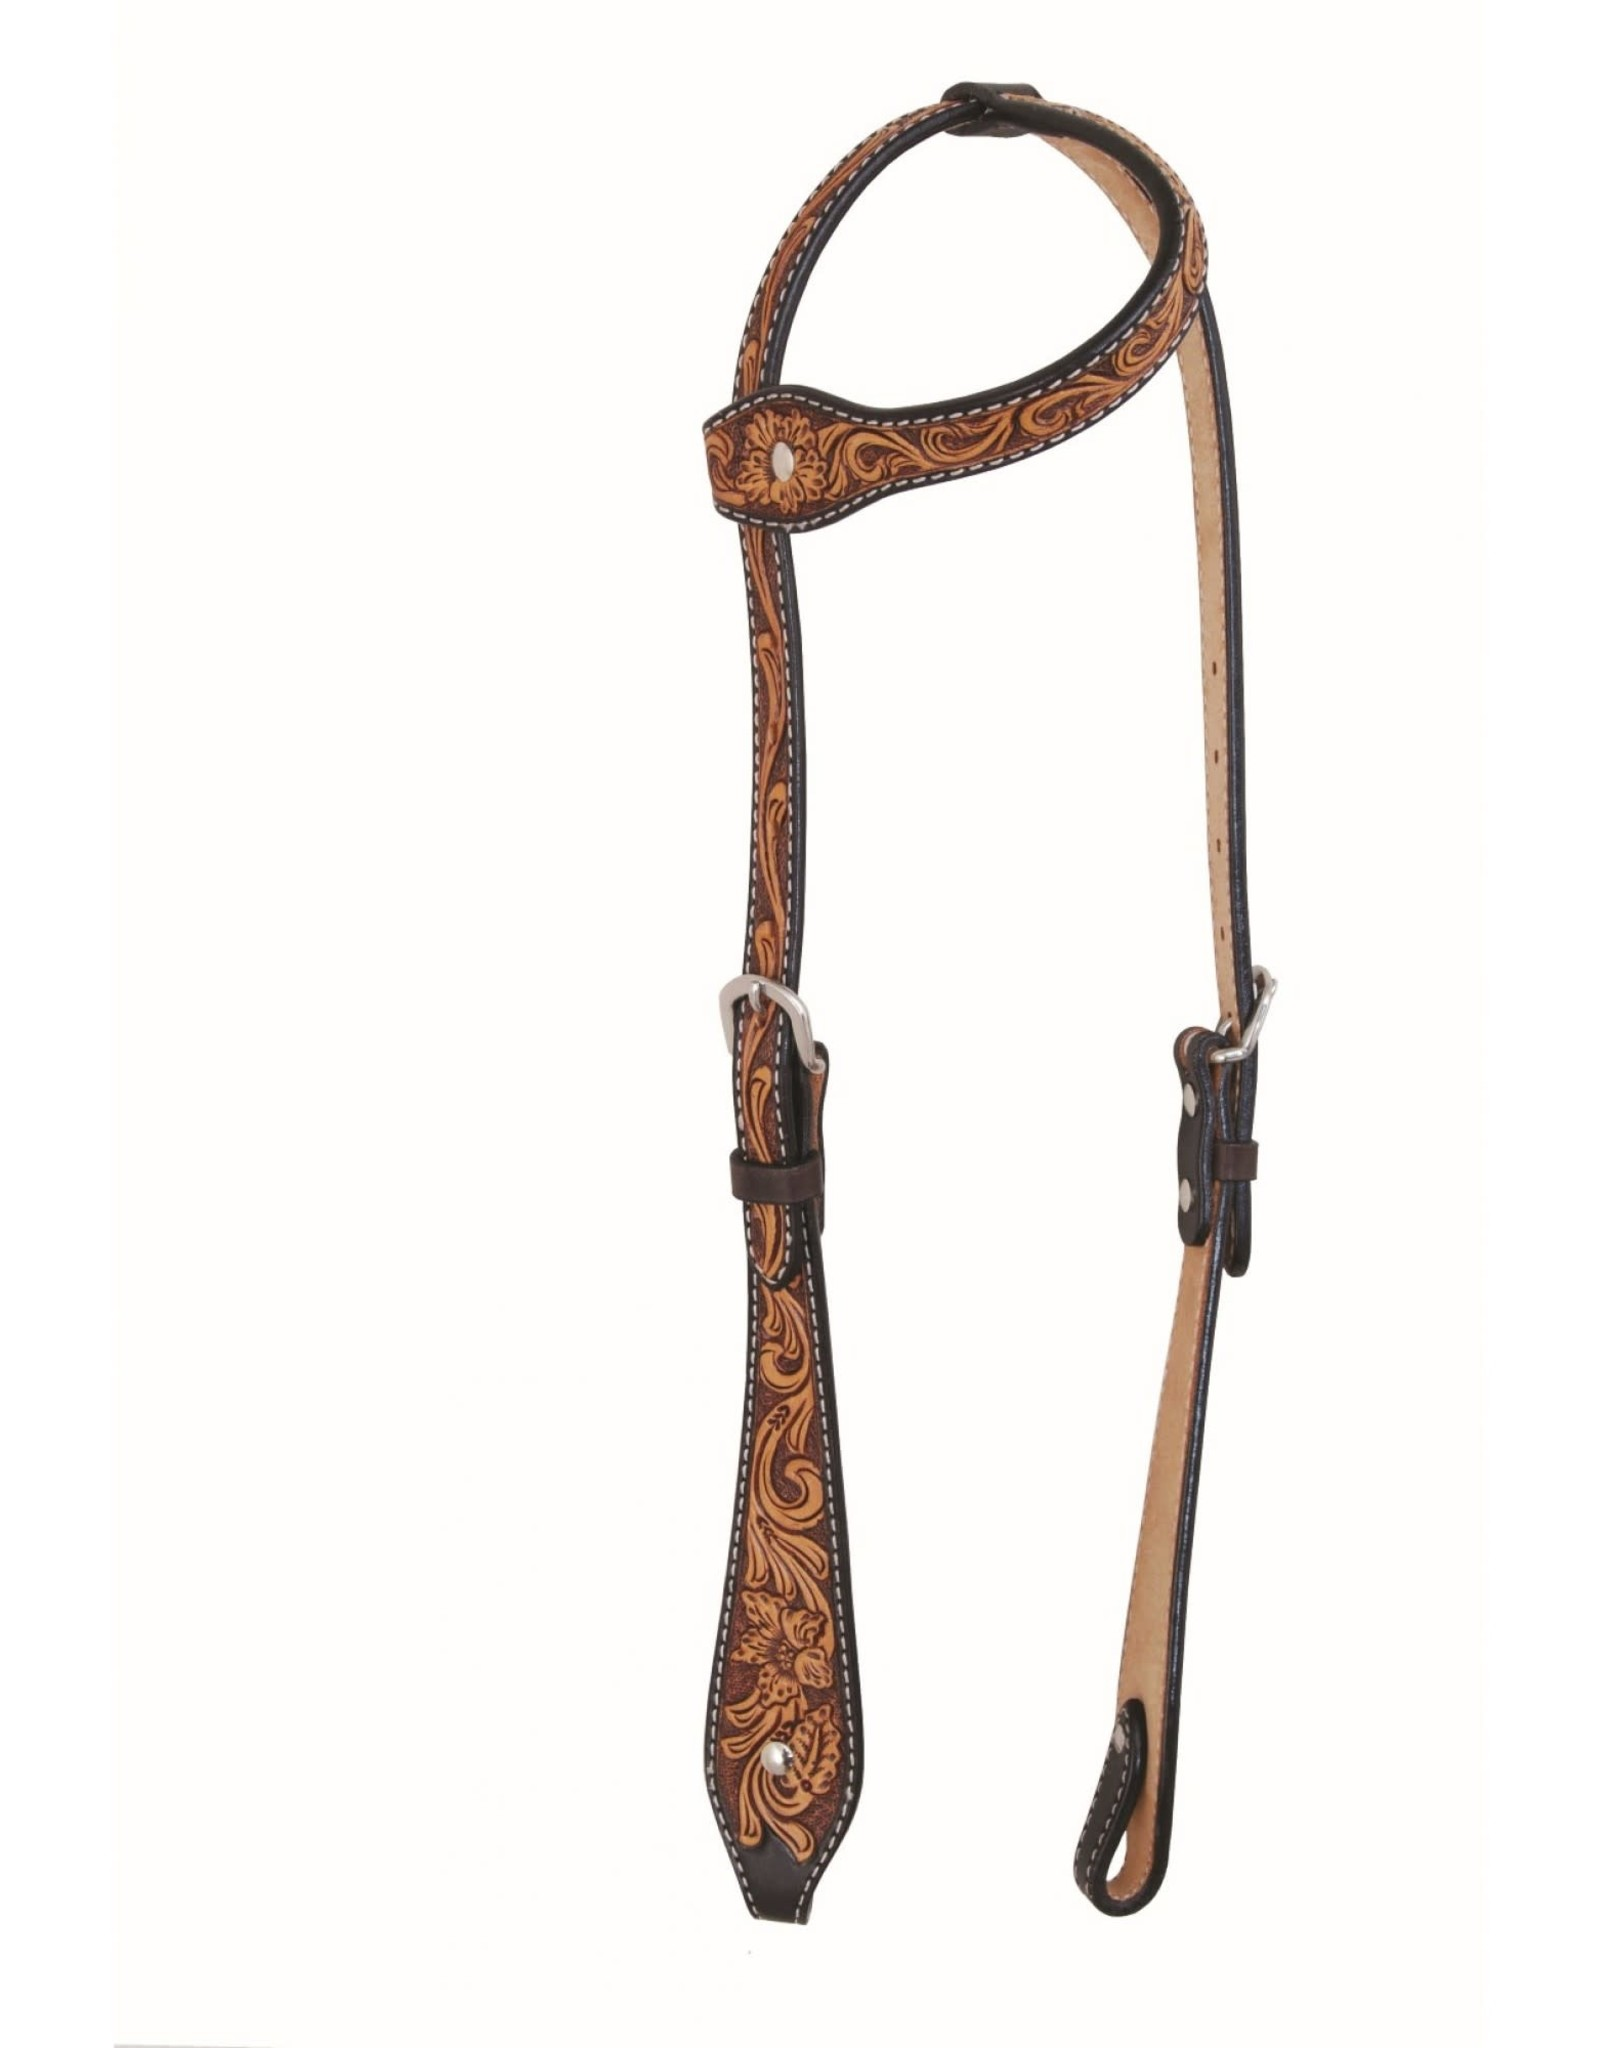 Western Rawhide By Jim Taylor Western Rawhide Tear Drop One Ear Headstall Floral Two-Tone